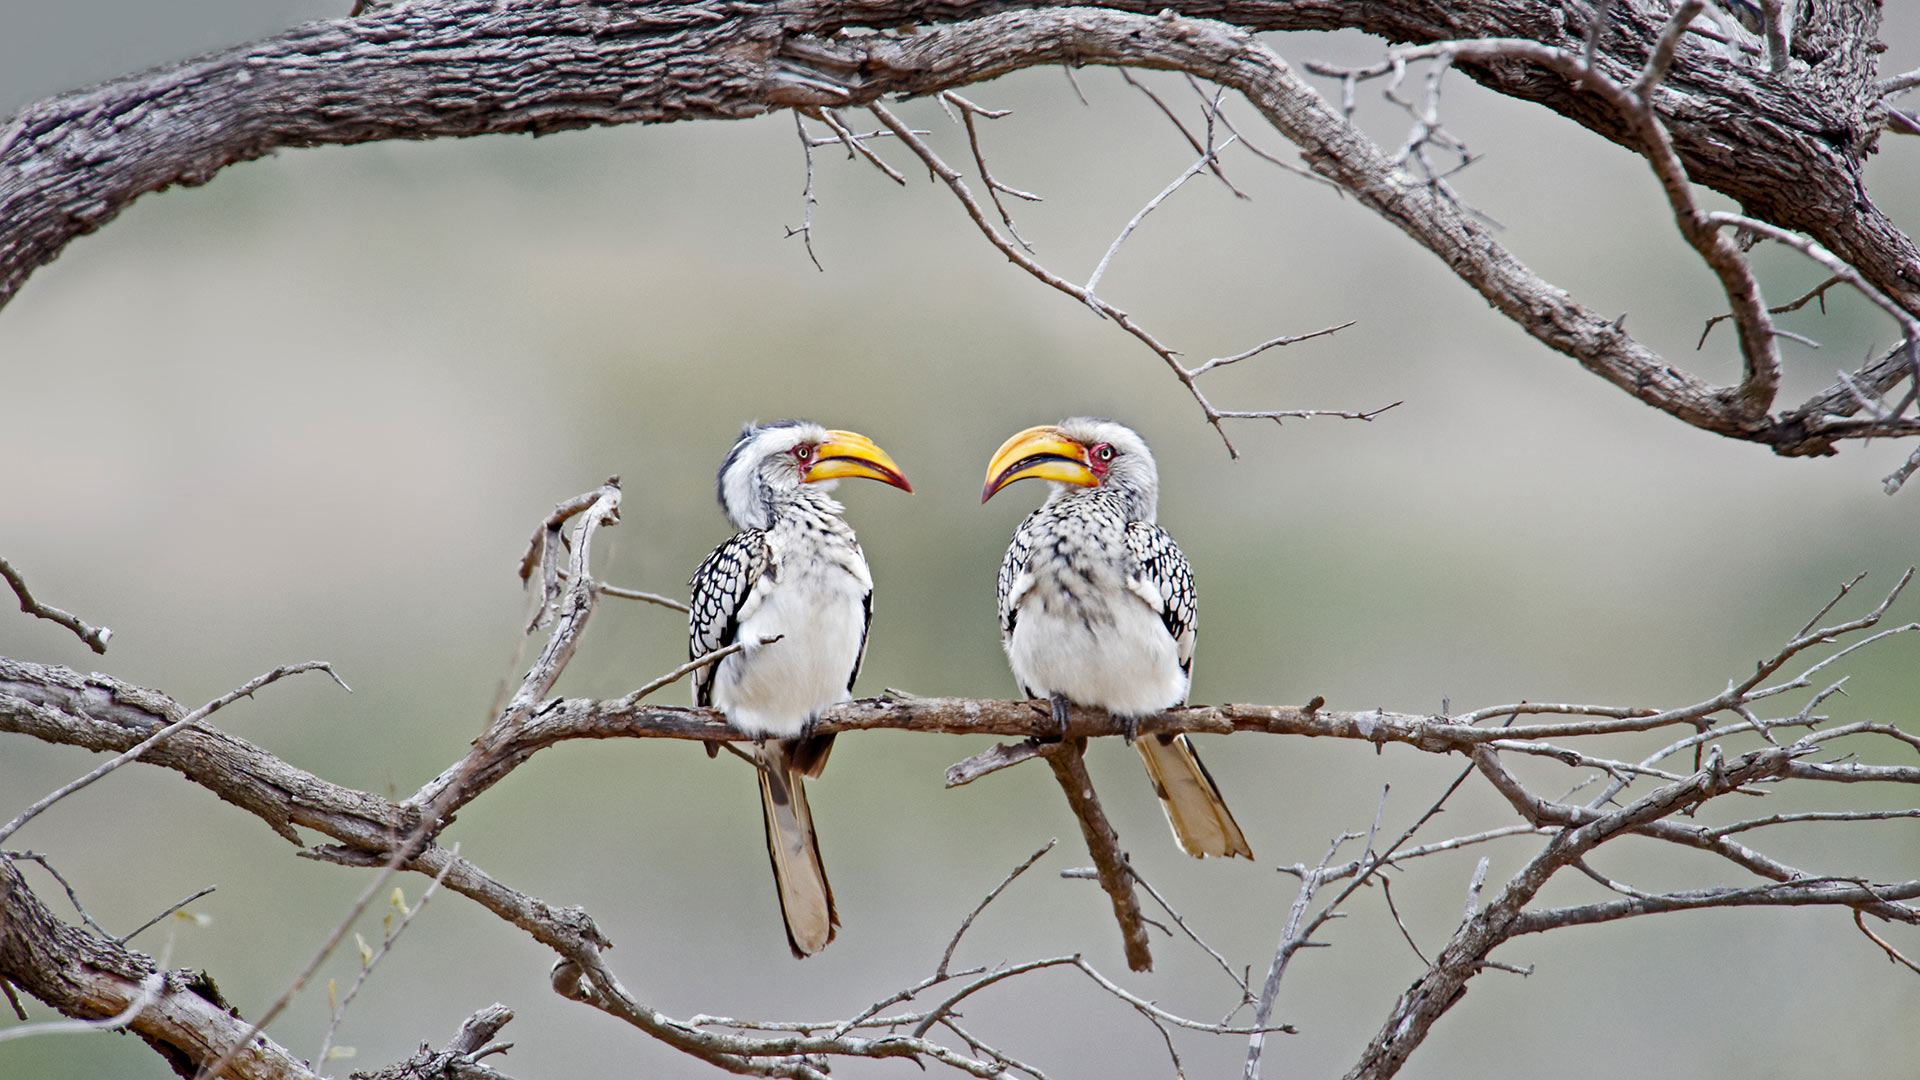 Southern yellow-billed hornbills in Kruger National Park, South Africa (© Ben Cranke/Getty Image)(Bing United States)